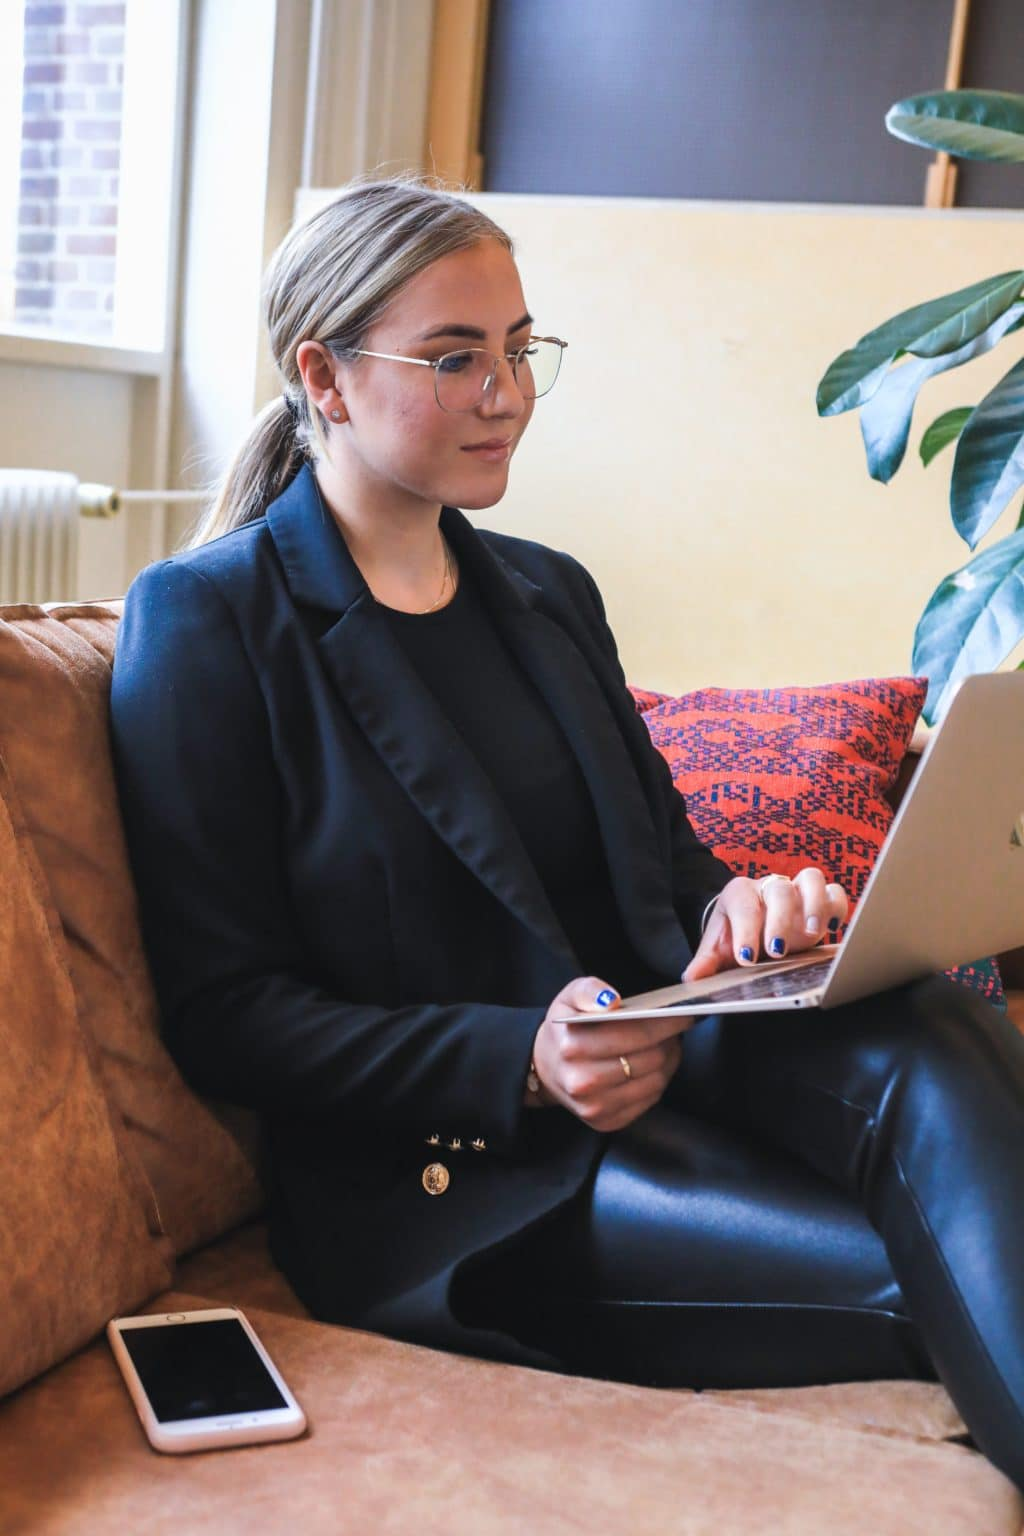 Remote interview with a young woman sitting on a couch